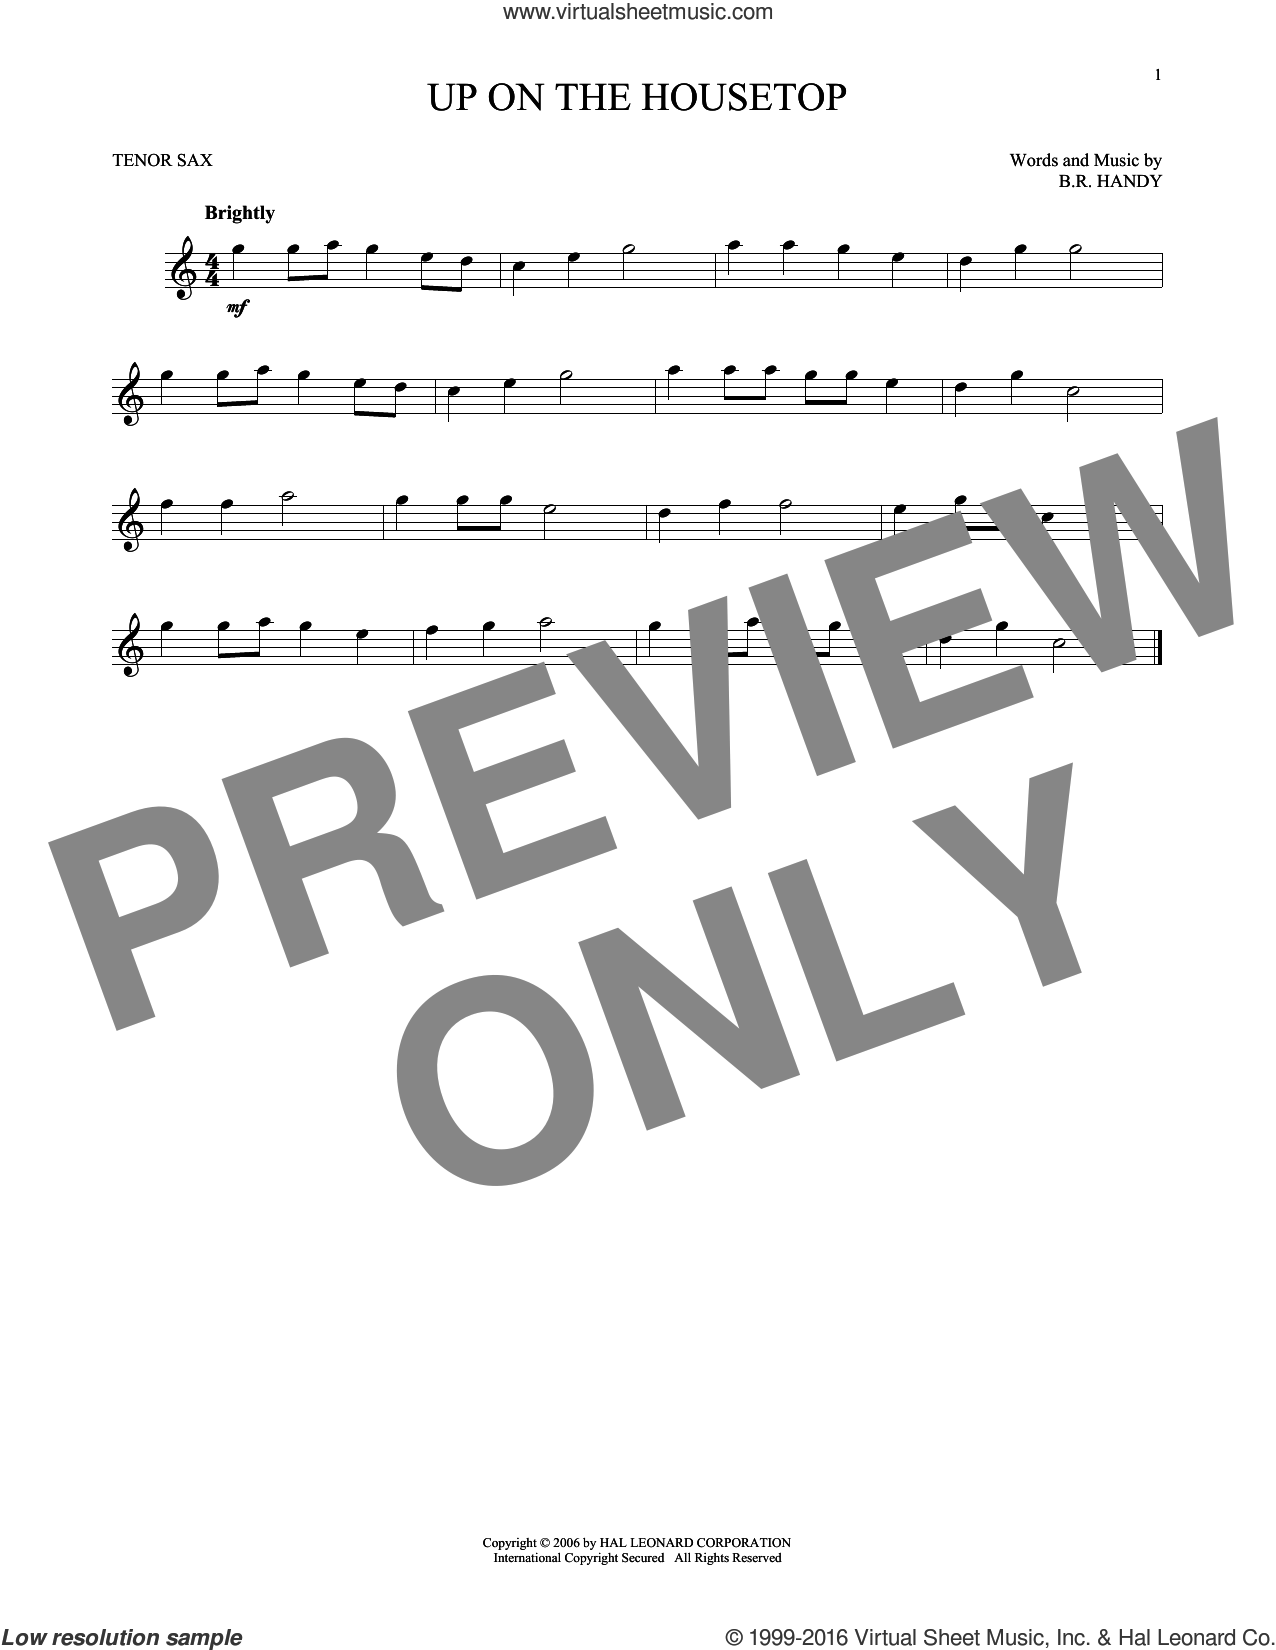 Up On The Housetop sheet music for tenor saxophone solo by Benjamin Hanby, intermediate skill level